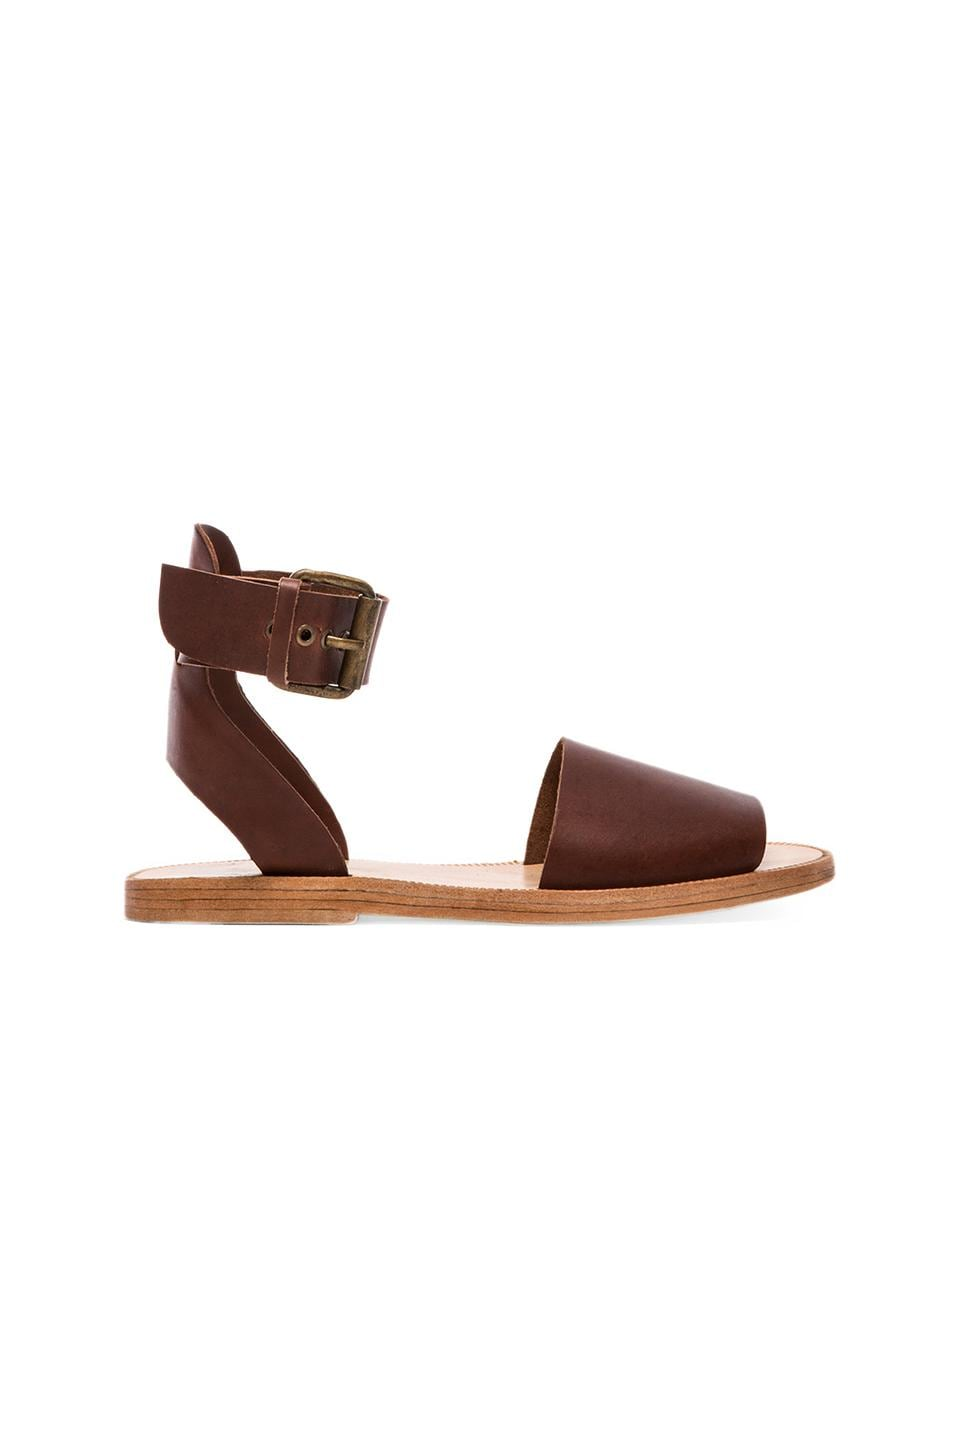 H by Hudson Sollar Sandal in Calf Tan